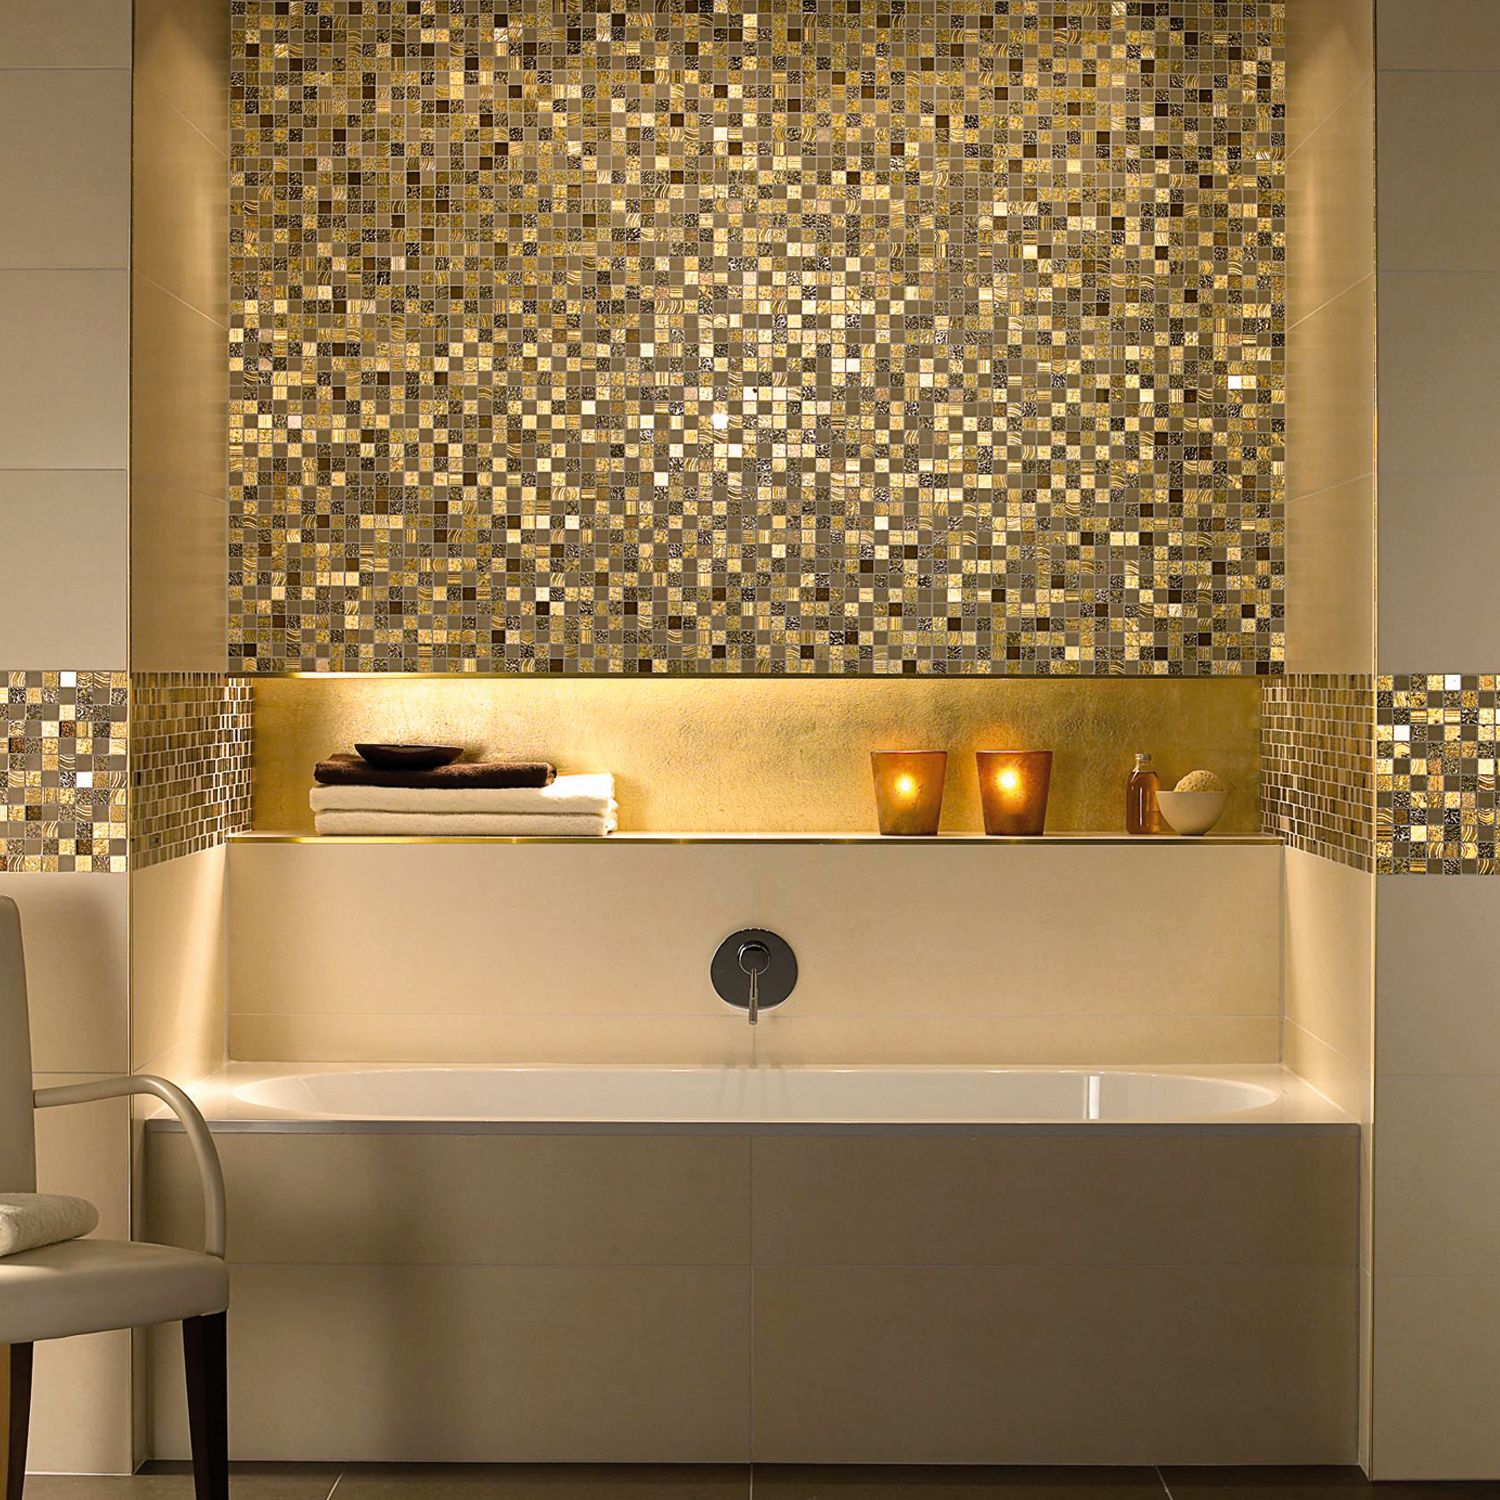 bathroom, golden bathroom, gold,maison valentina, bathub, mirror, rug, tap, bathroom decoration, bathroom decor  5 Ideas to Add a Touch of Gold to Your Bathroom 5 ideas to add a touch of gold to your bathroom  Schluter